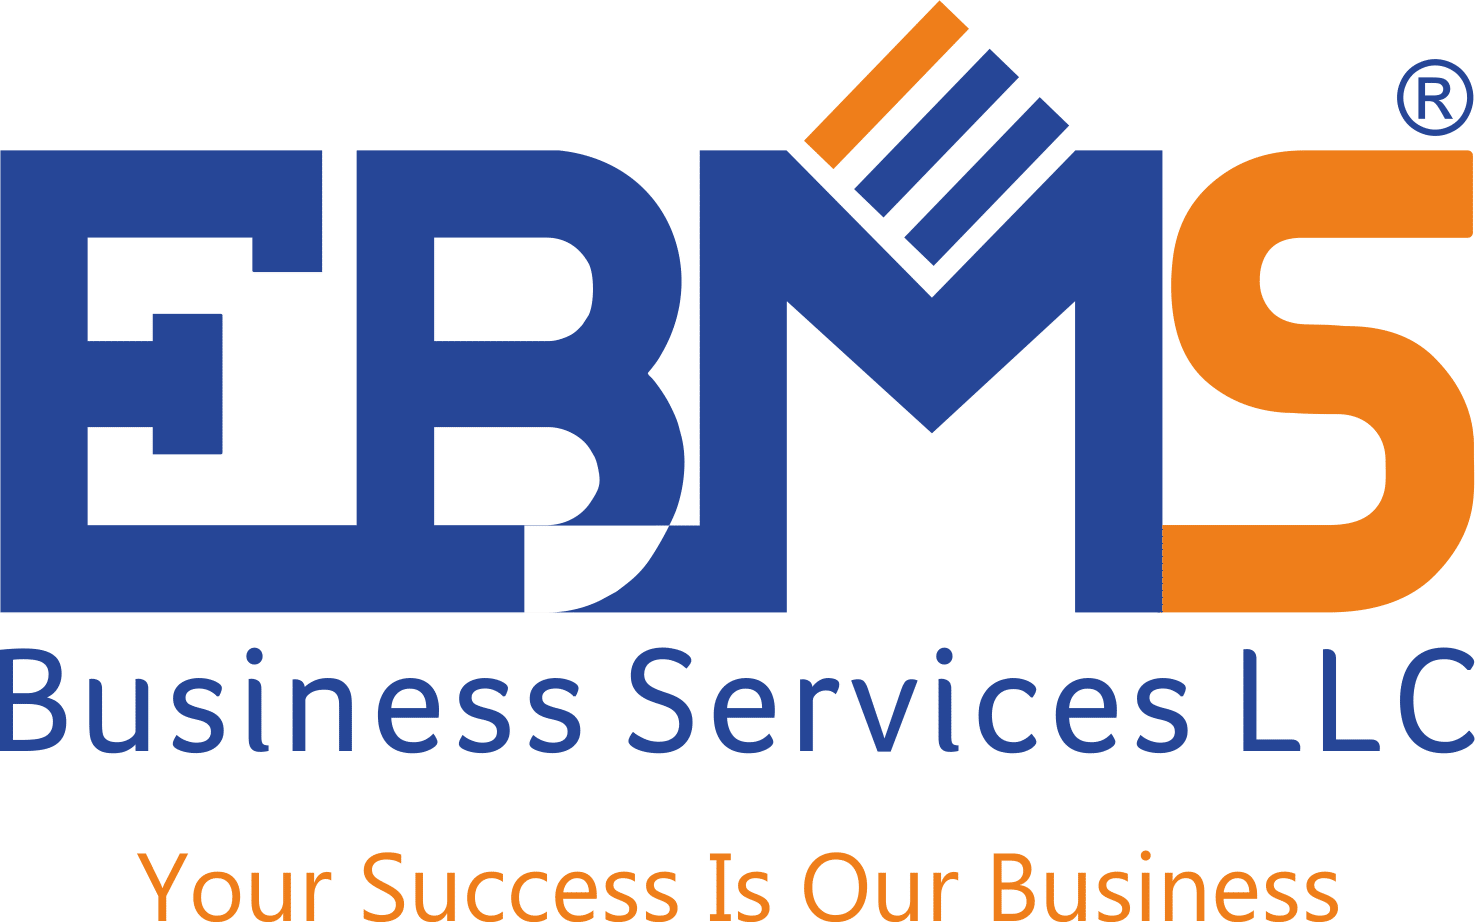 EBMS Business Services